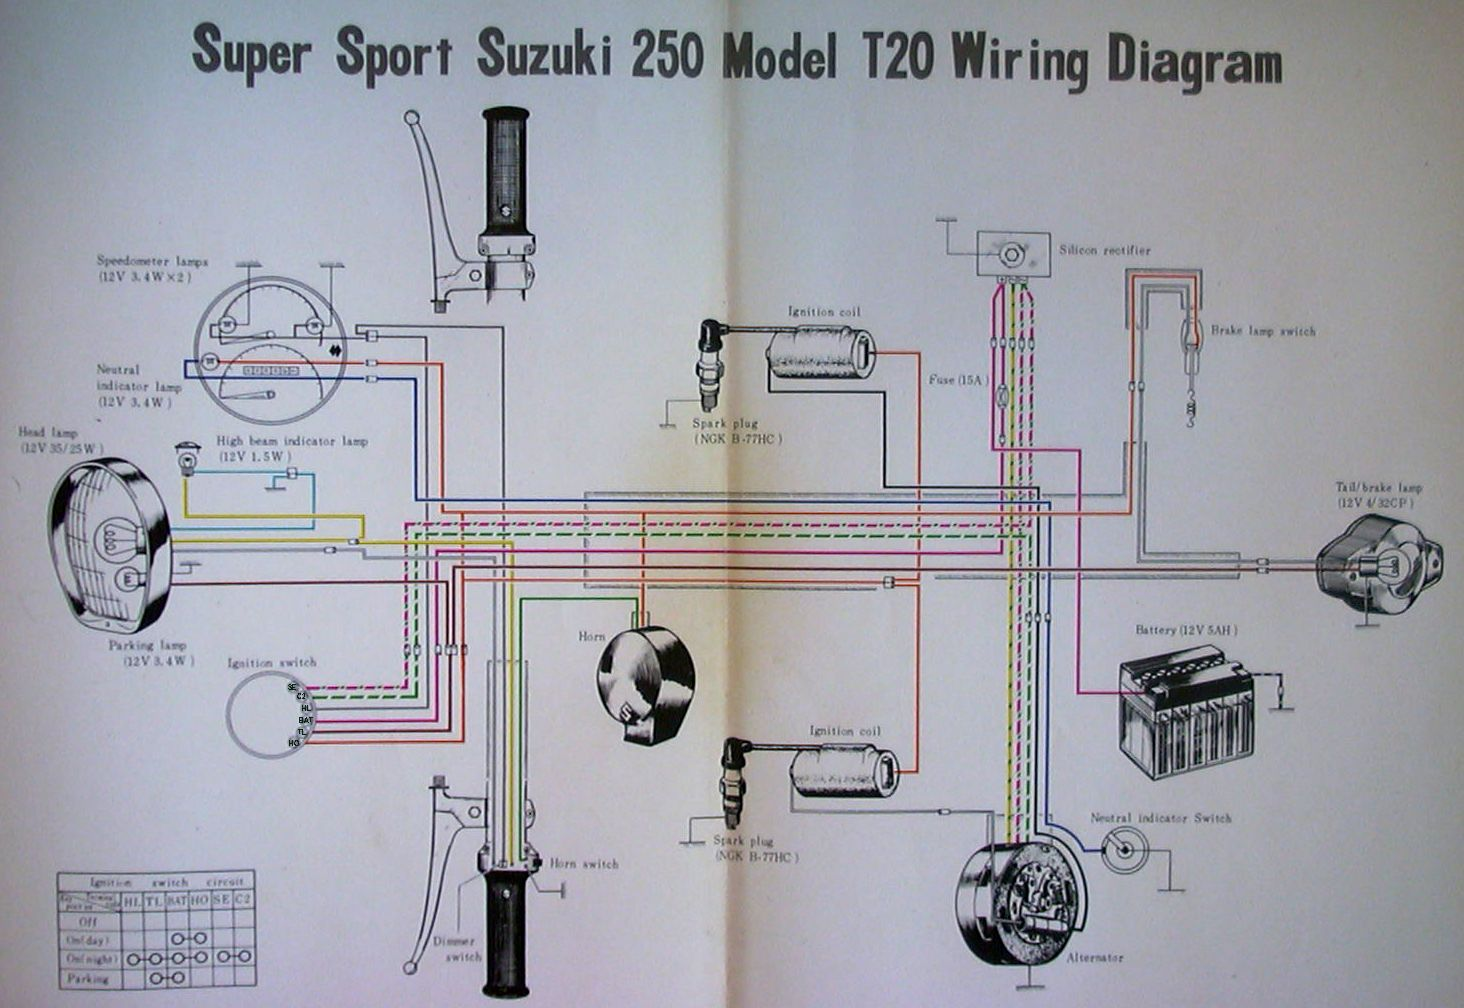 hight resolution of suzuki electrical diagram wiring diagram namesuzuki jimny electrical wiring diagram 17